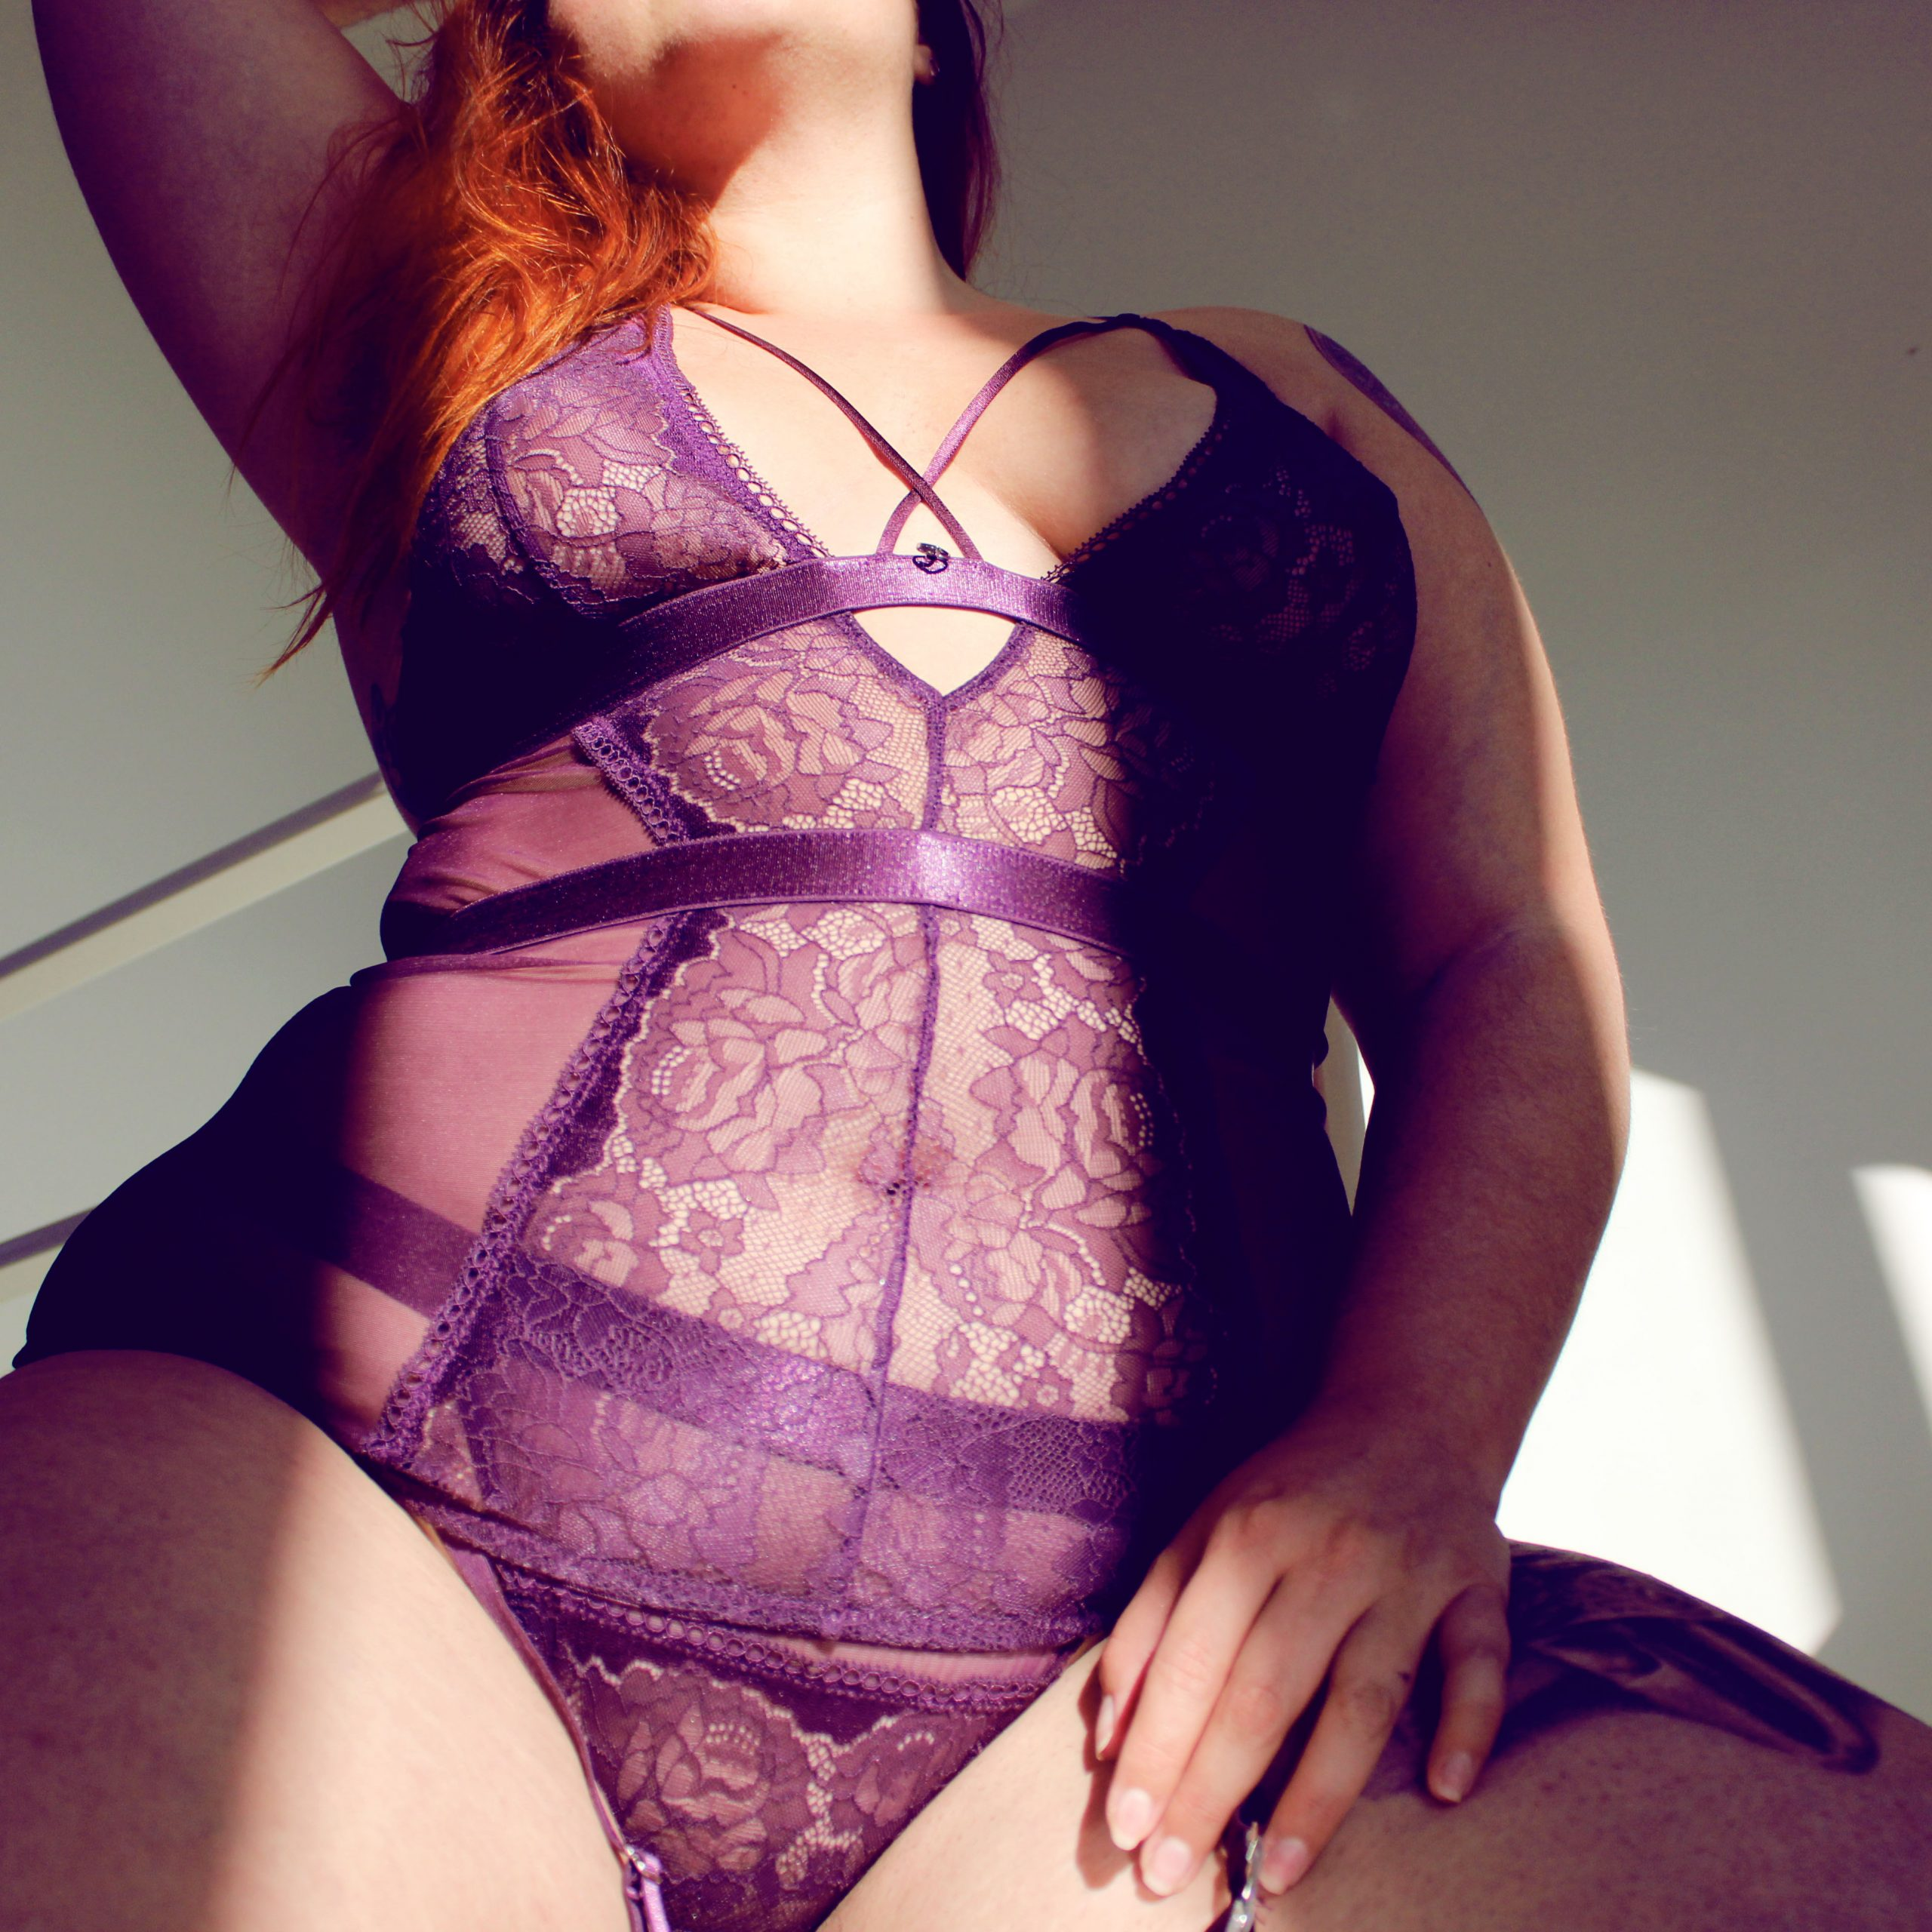 guepiere-sexy-grande-taille-lovehoney-blog-lingerie-conseil-lingerie-face1